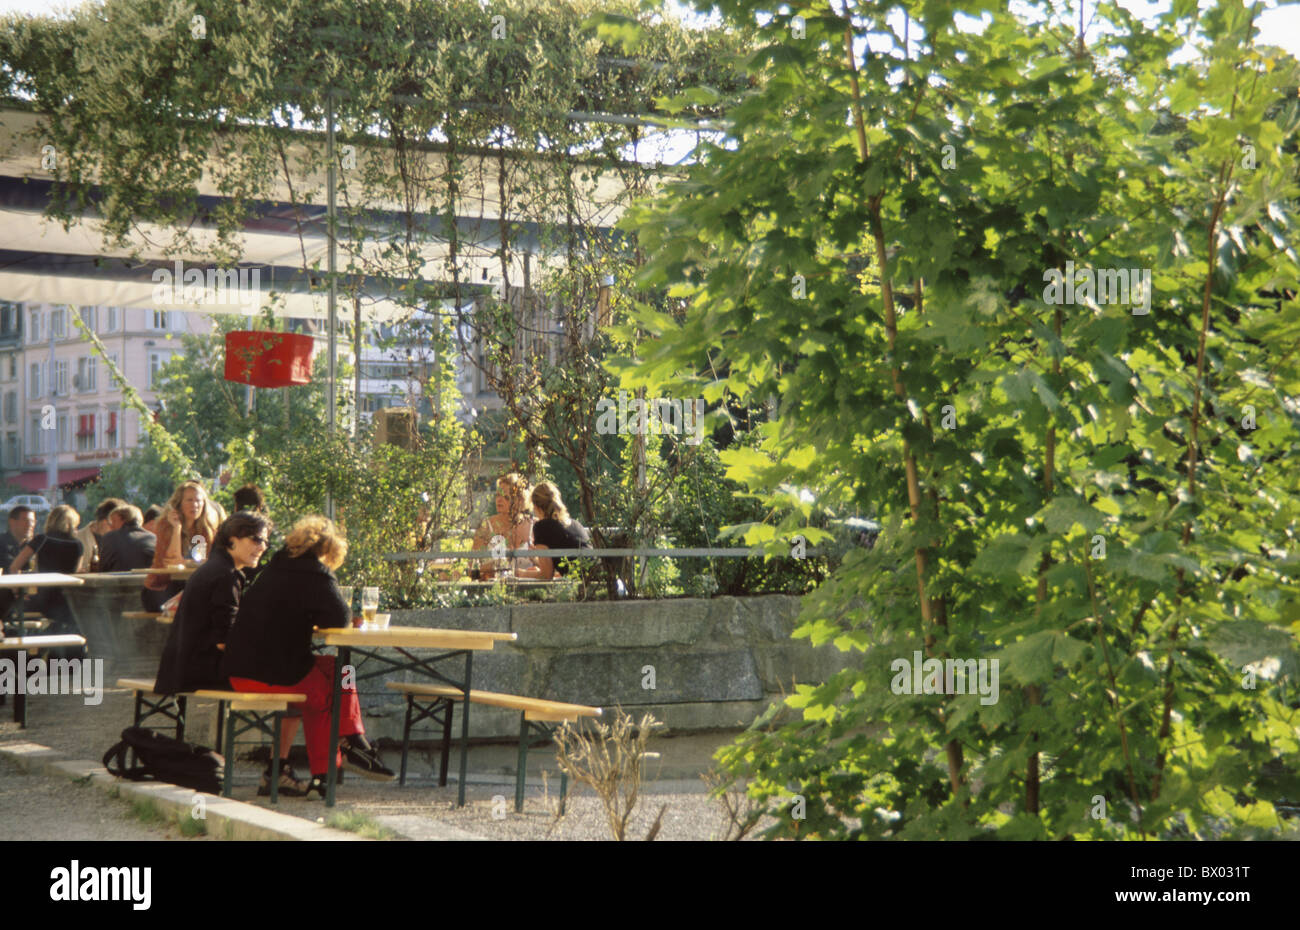 benches El Local garden restaurant guests company cosily restaurant Switzerland Europe tables desks under - Stock Image